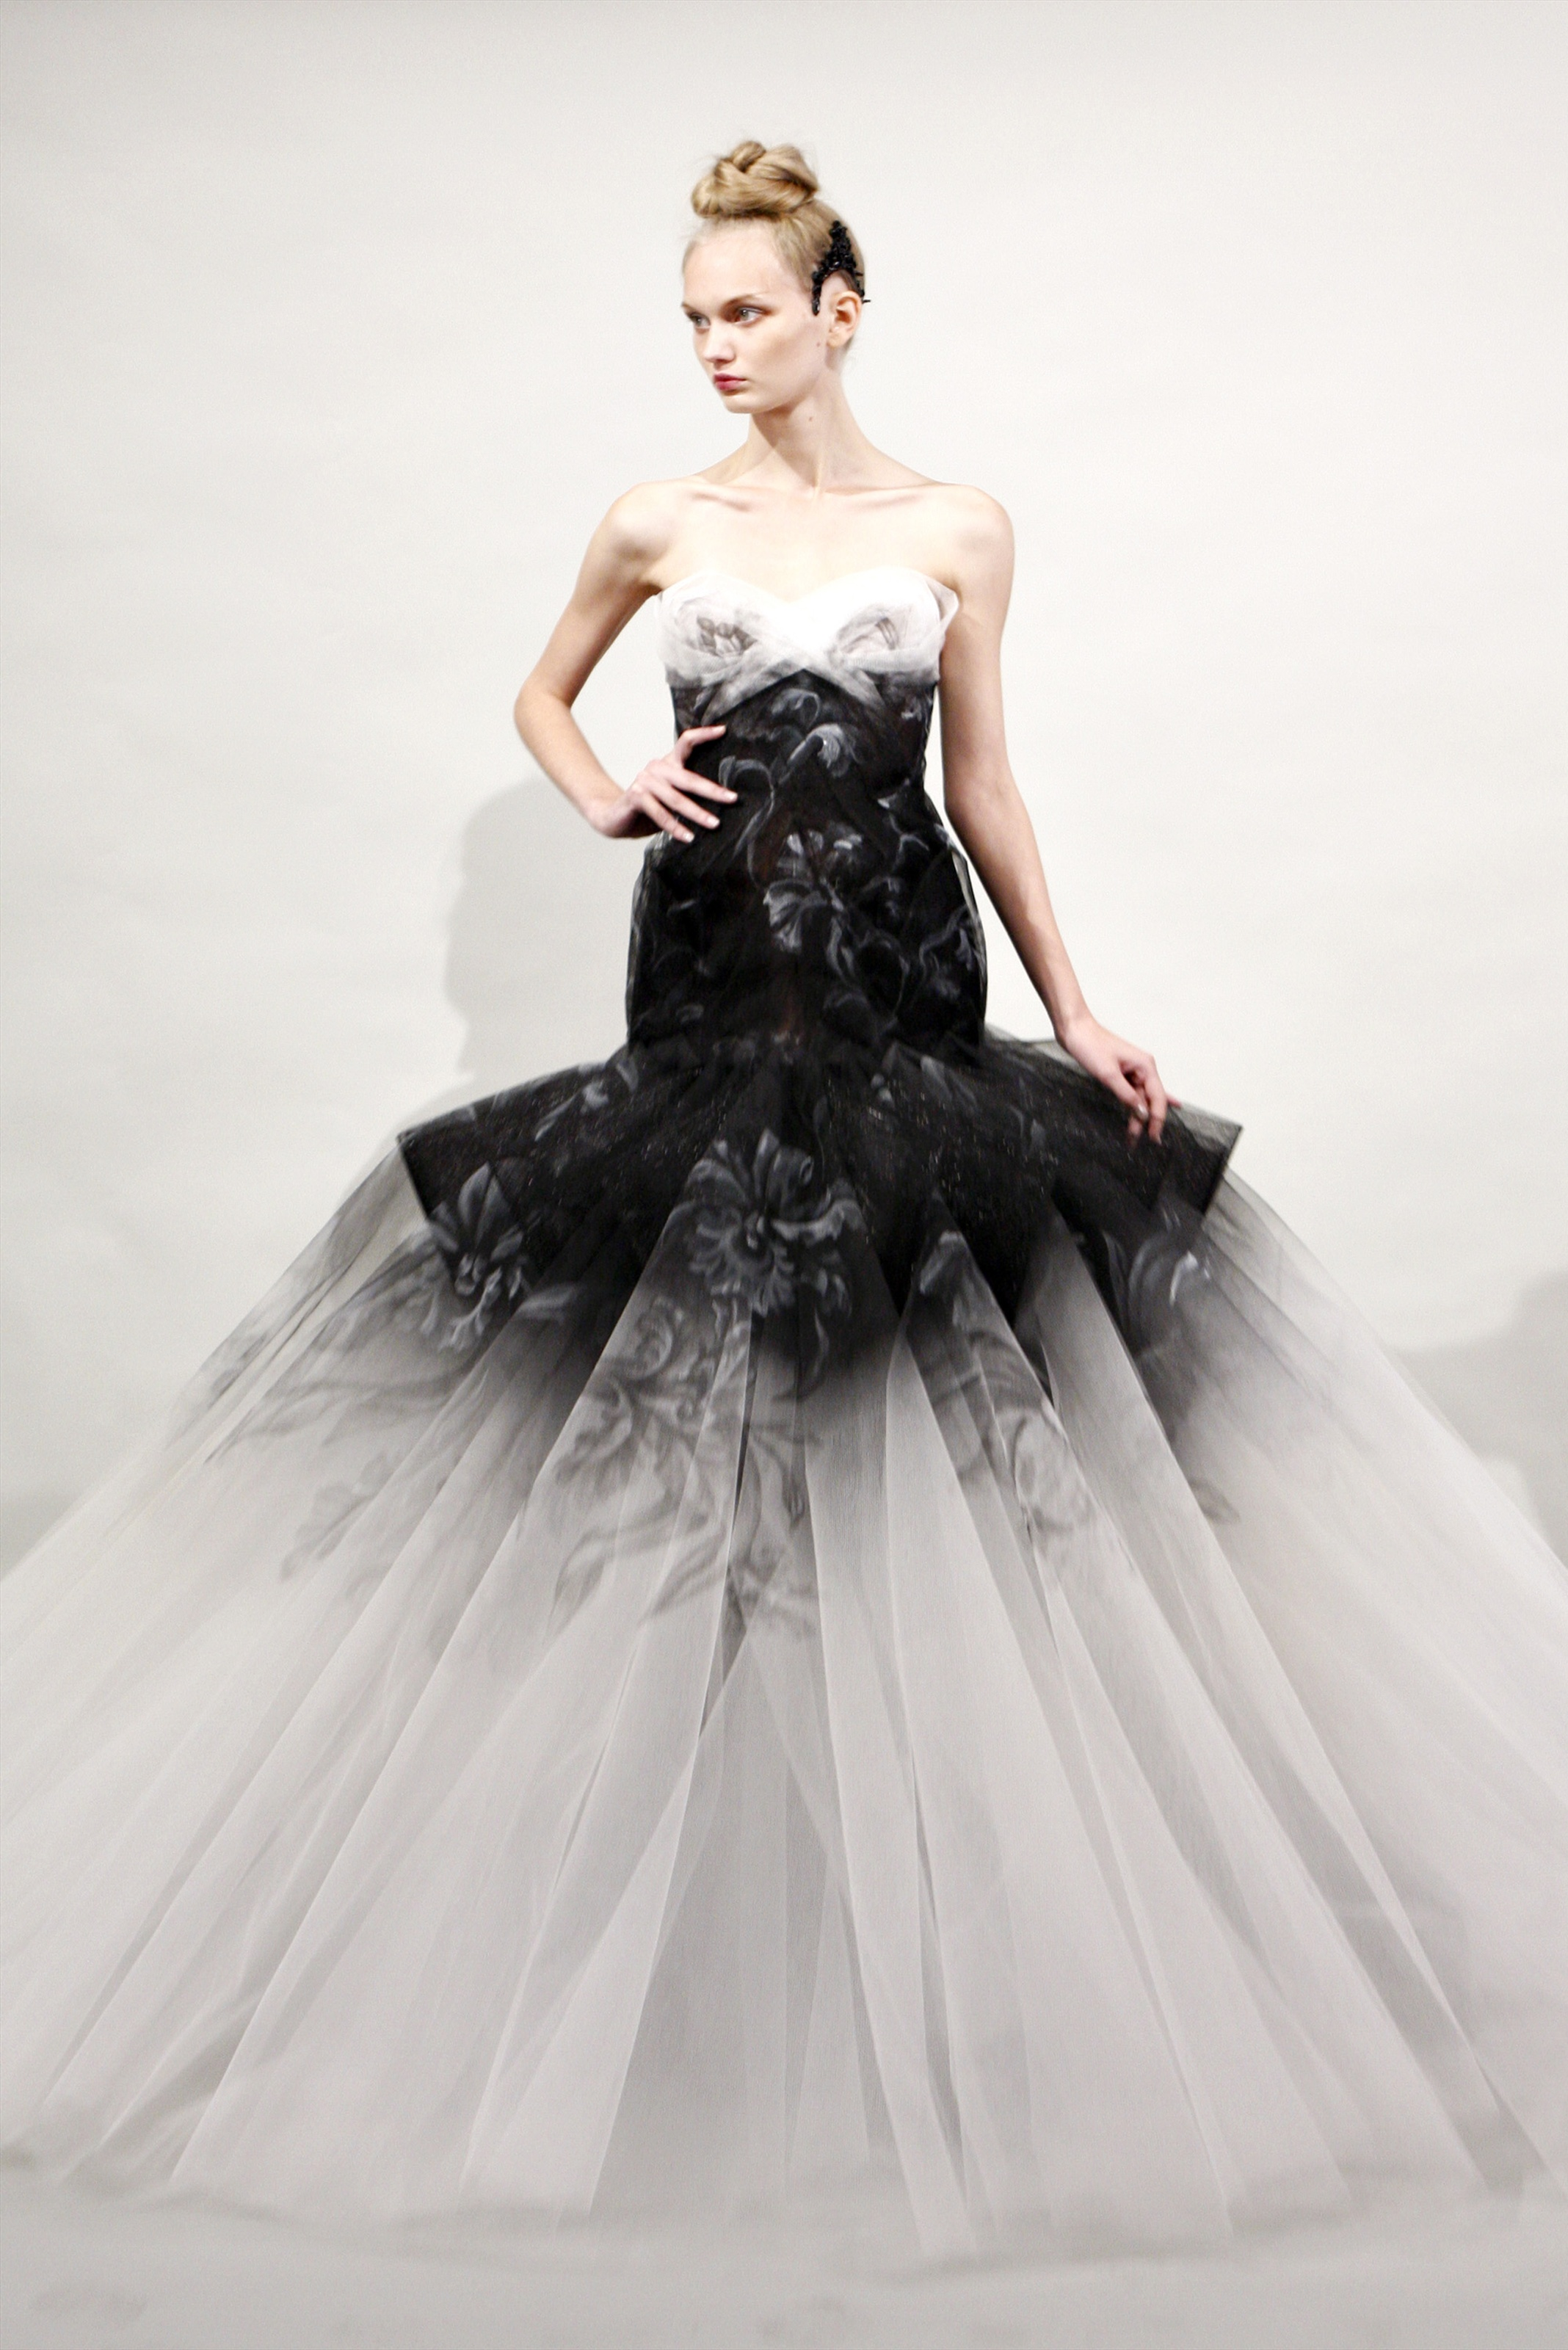 30 Ideas of Beautiful Black and White Wedding Dresses | The Best ...